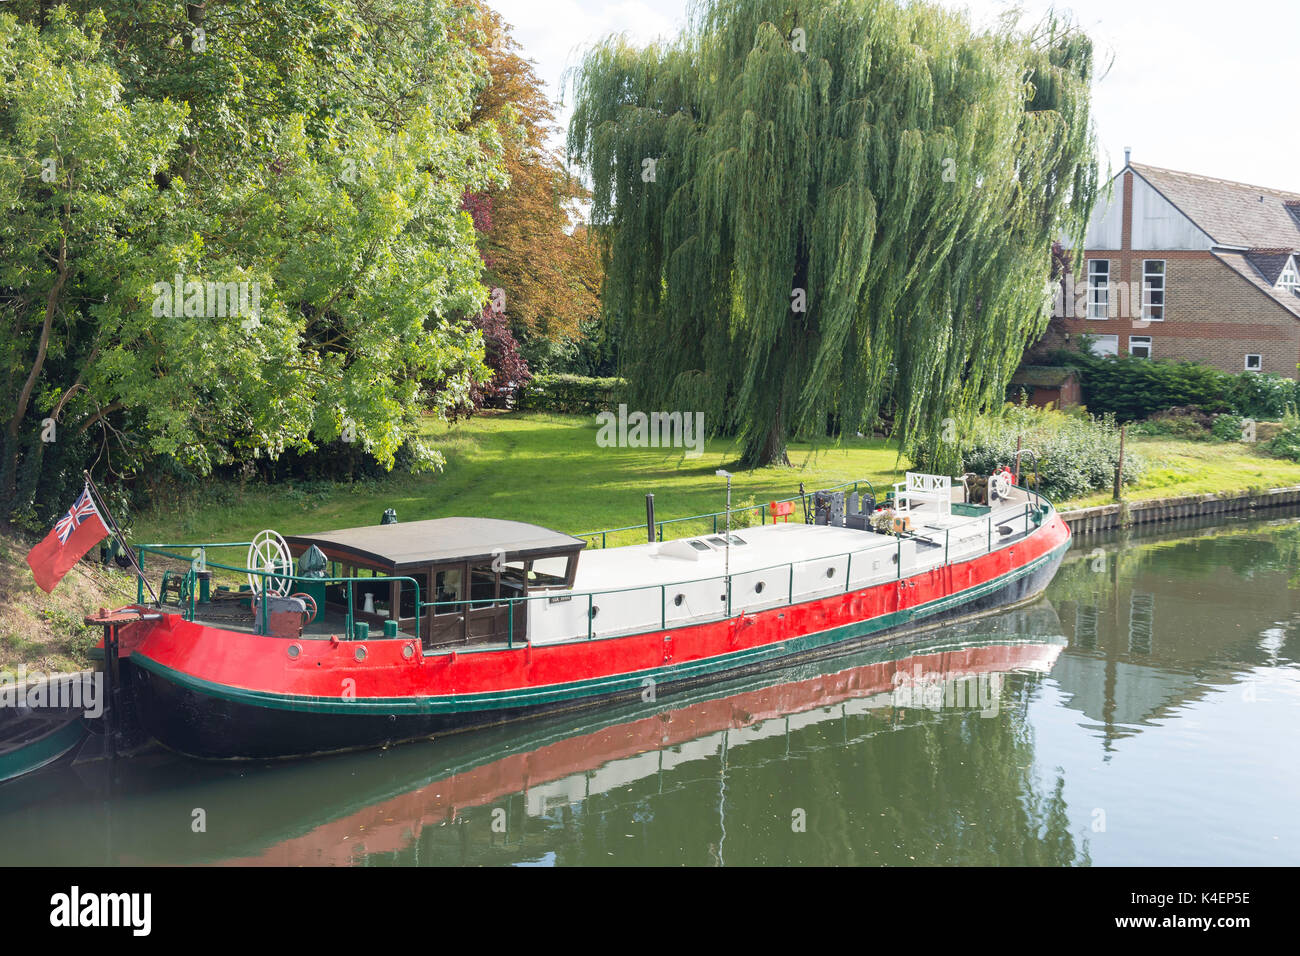 Old barge moored on River Thames riverbank, Pangbourne, Berkshire, England, United Kingdom - Stock Image